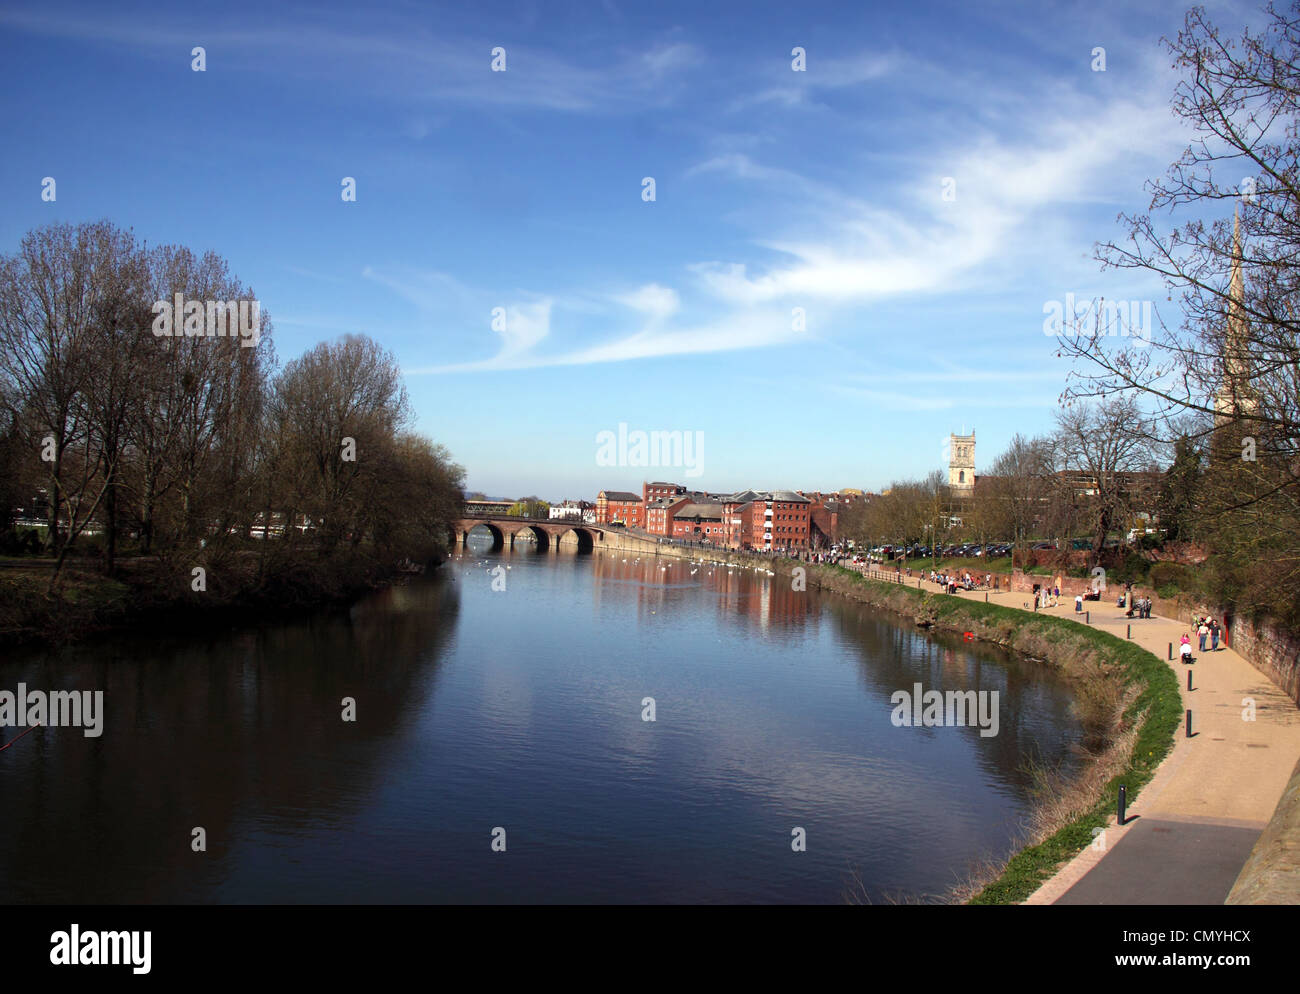 View along the River Severn at Worcester to Worcester Bridge. People walking along the footpath at the side. Blue - Stock Image